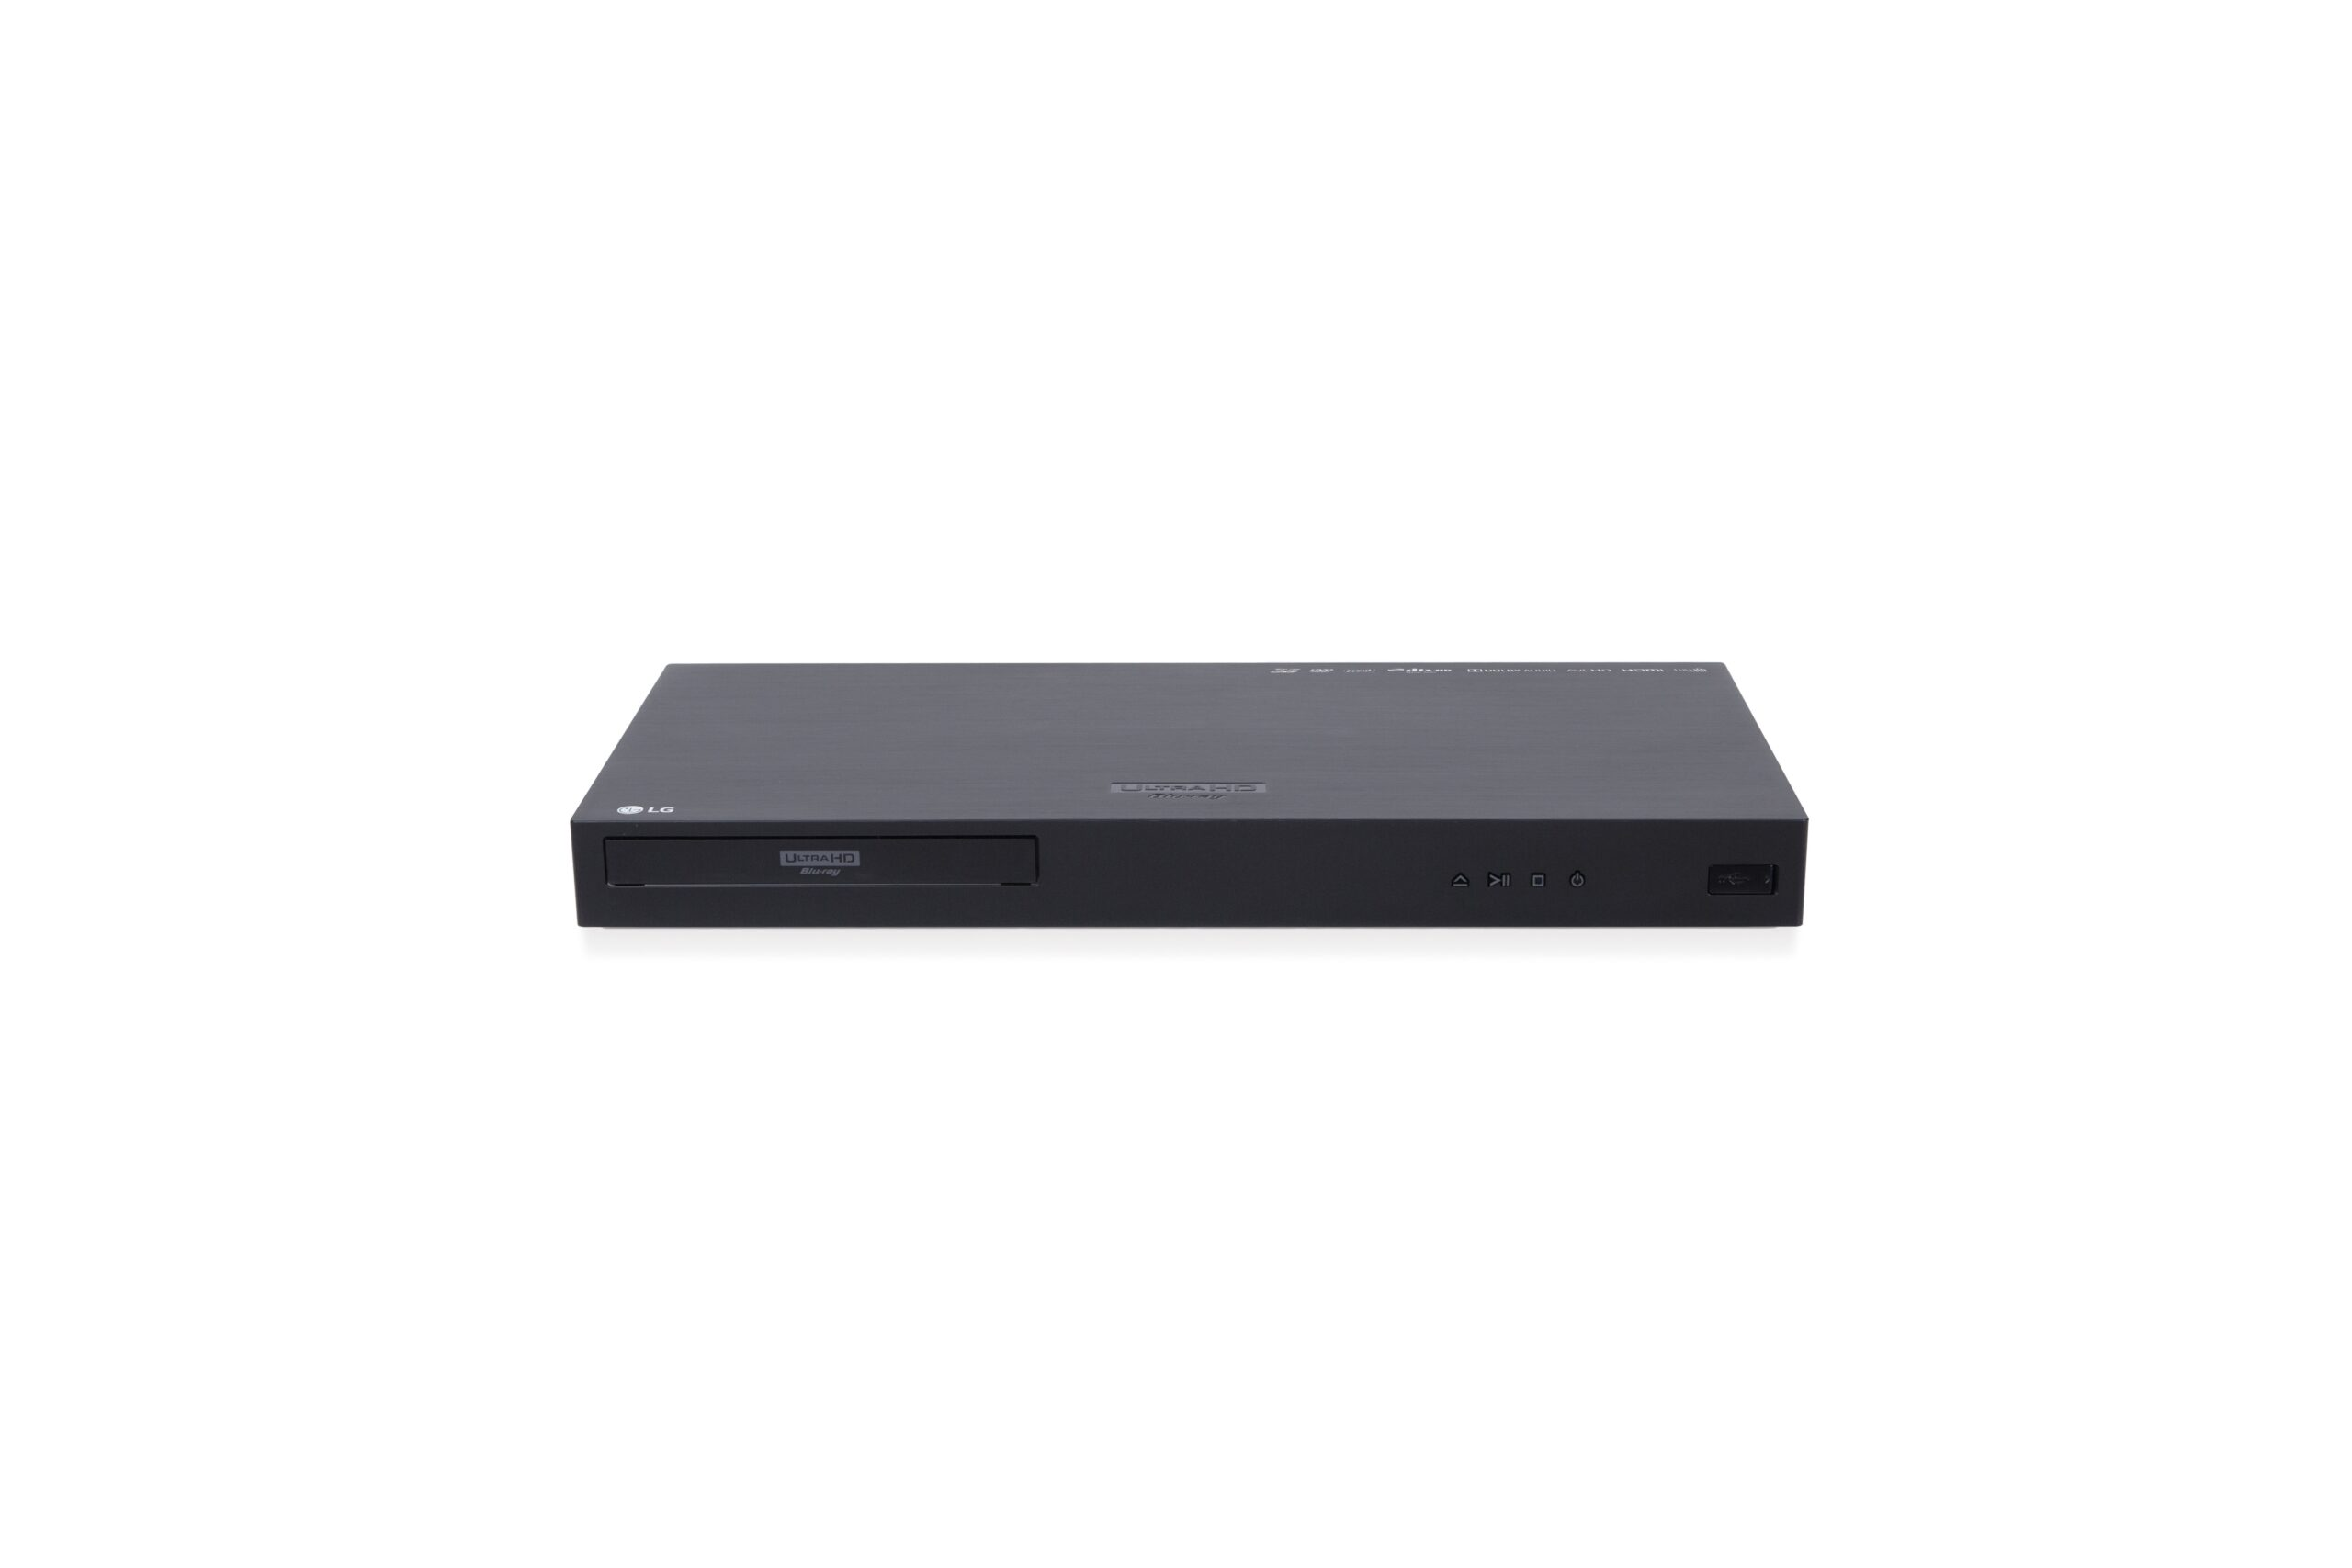 Front view of the LG UP970 Ultra HD Blu-ray player